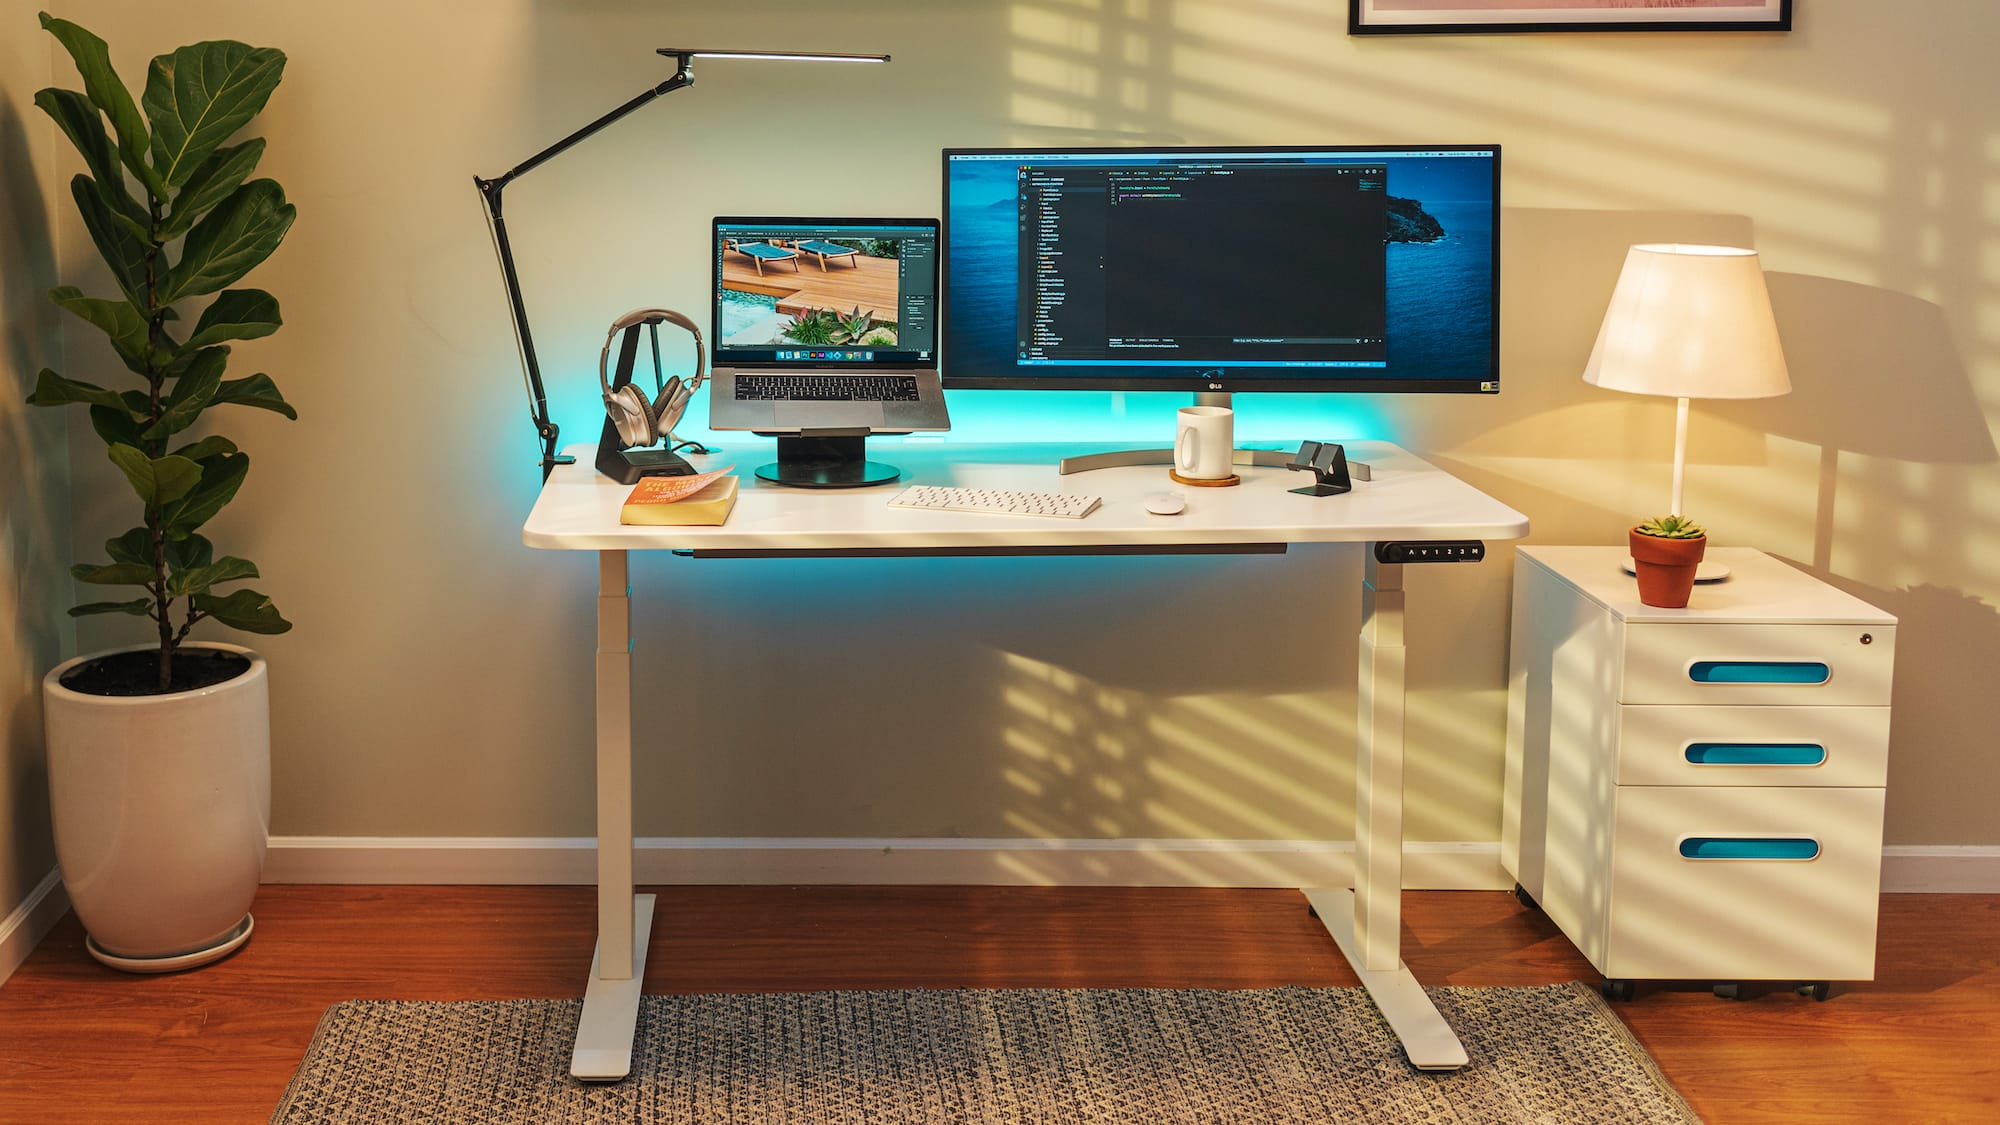 Autonomous SmartDesk 4 advanced standing desk revolutionizes your work routine